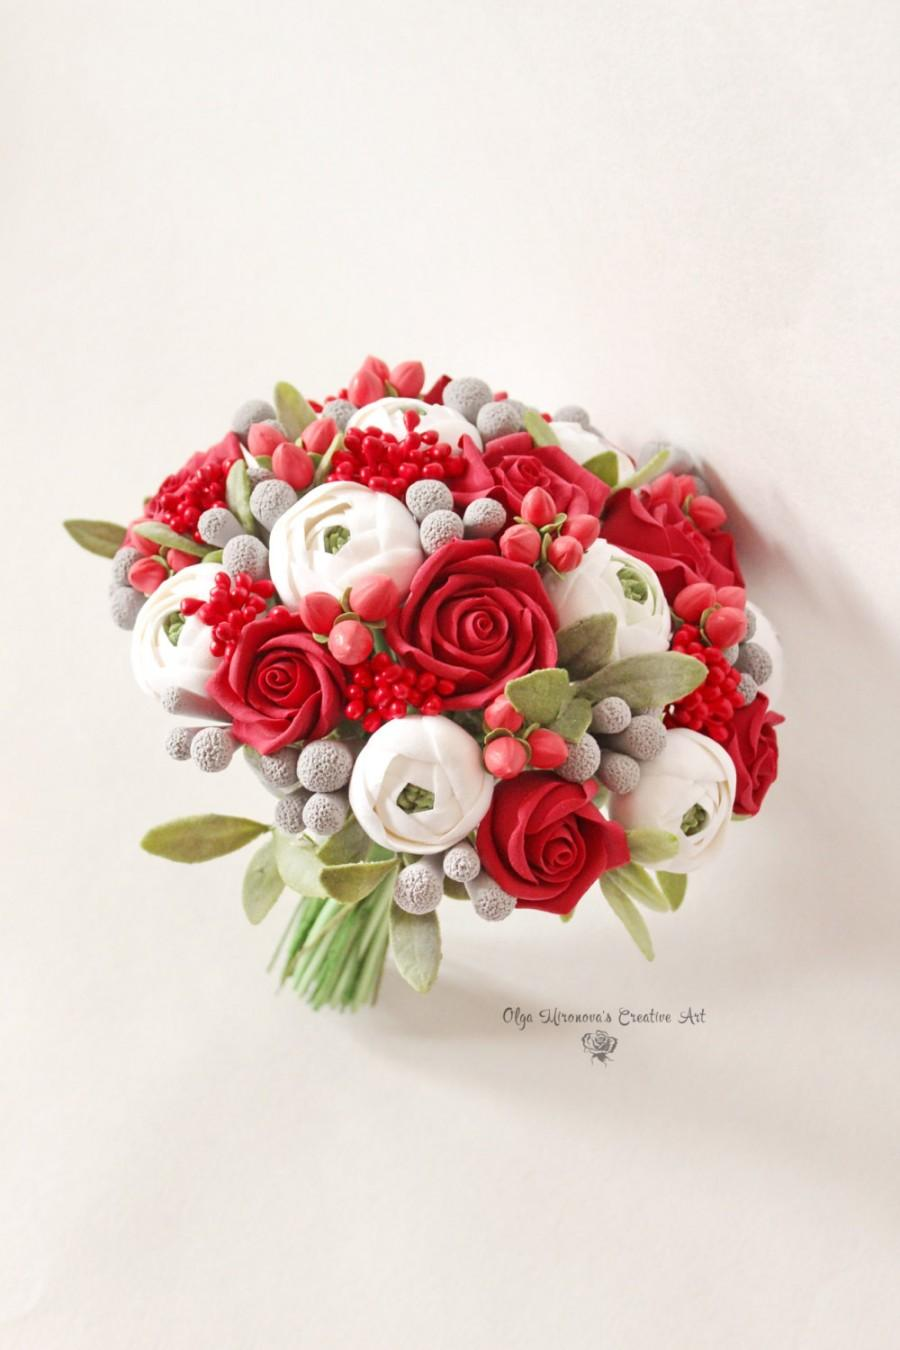 Alternative Wedding Bouquet Keepsake Red Roses Bridal Clay Flowers Berries Toss White